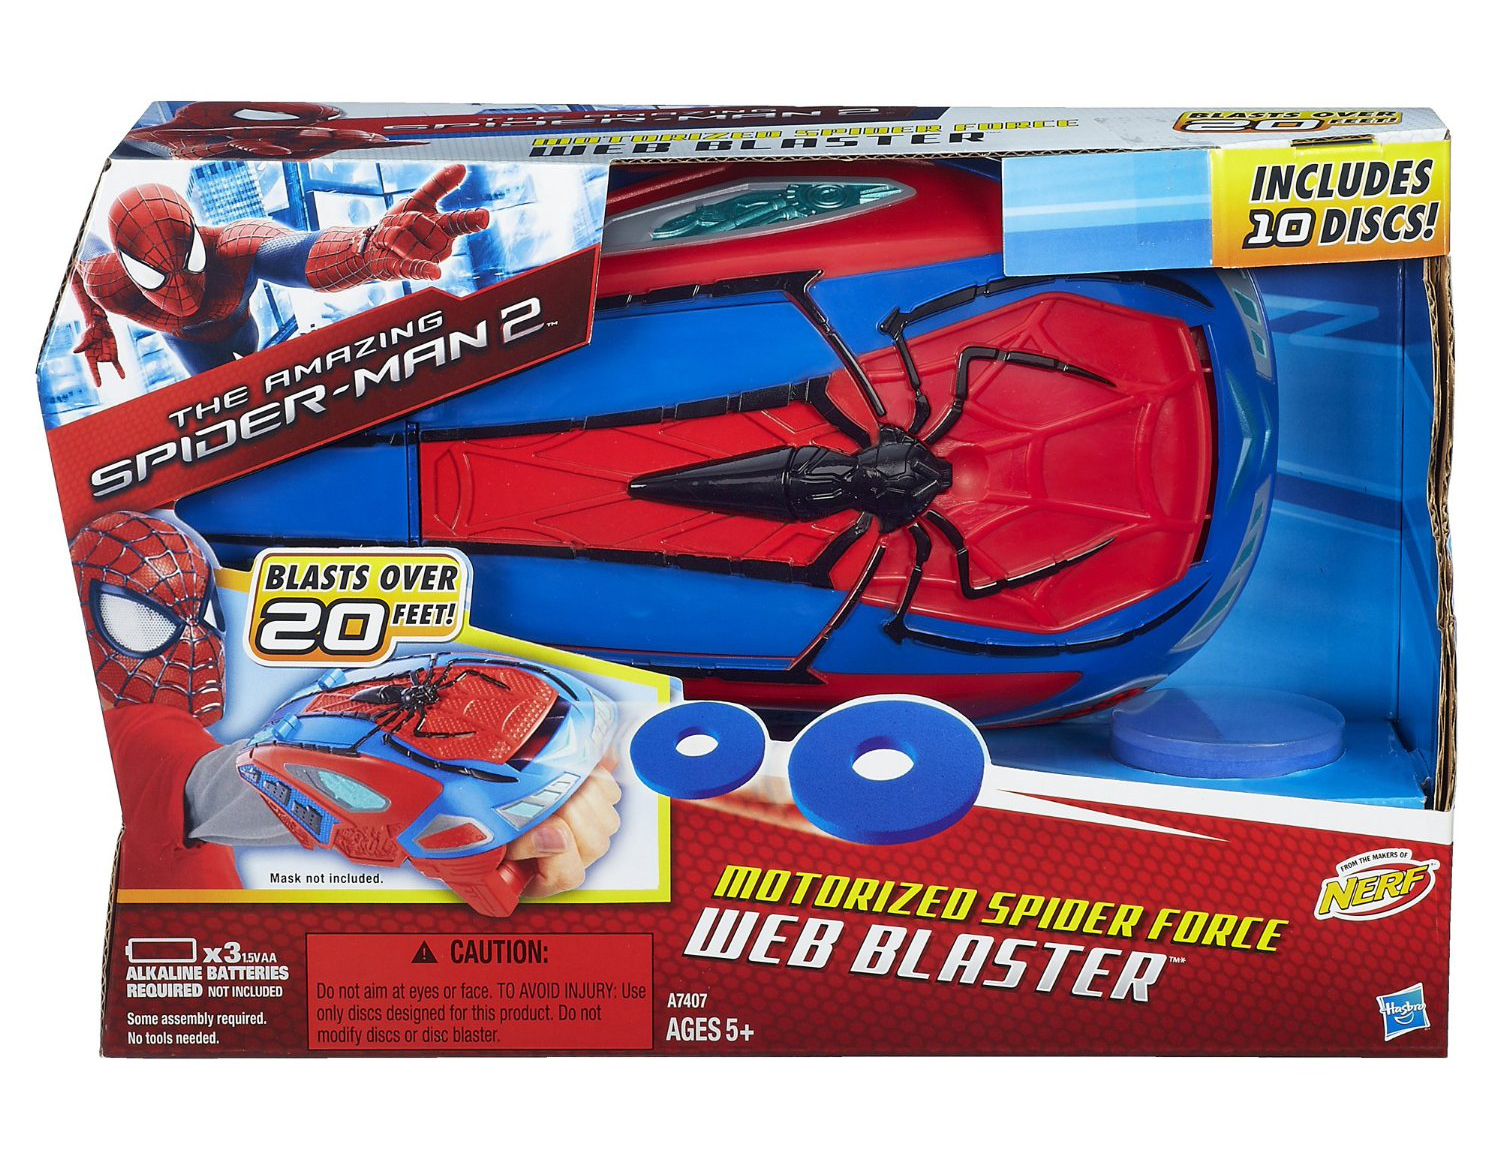 The Amazing Spider-Man 2 Motorized Spider Force Web Blaster